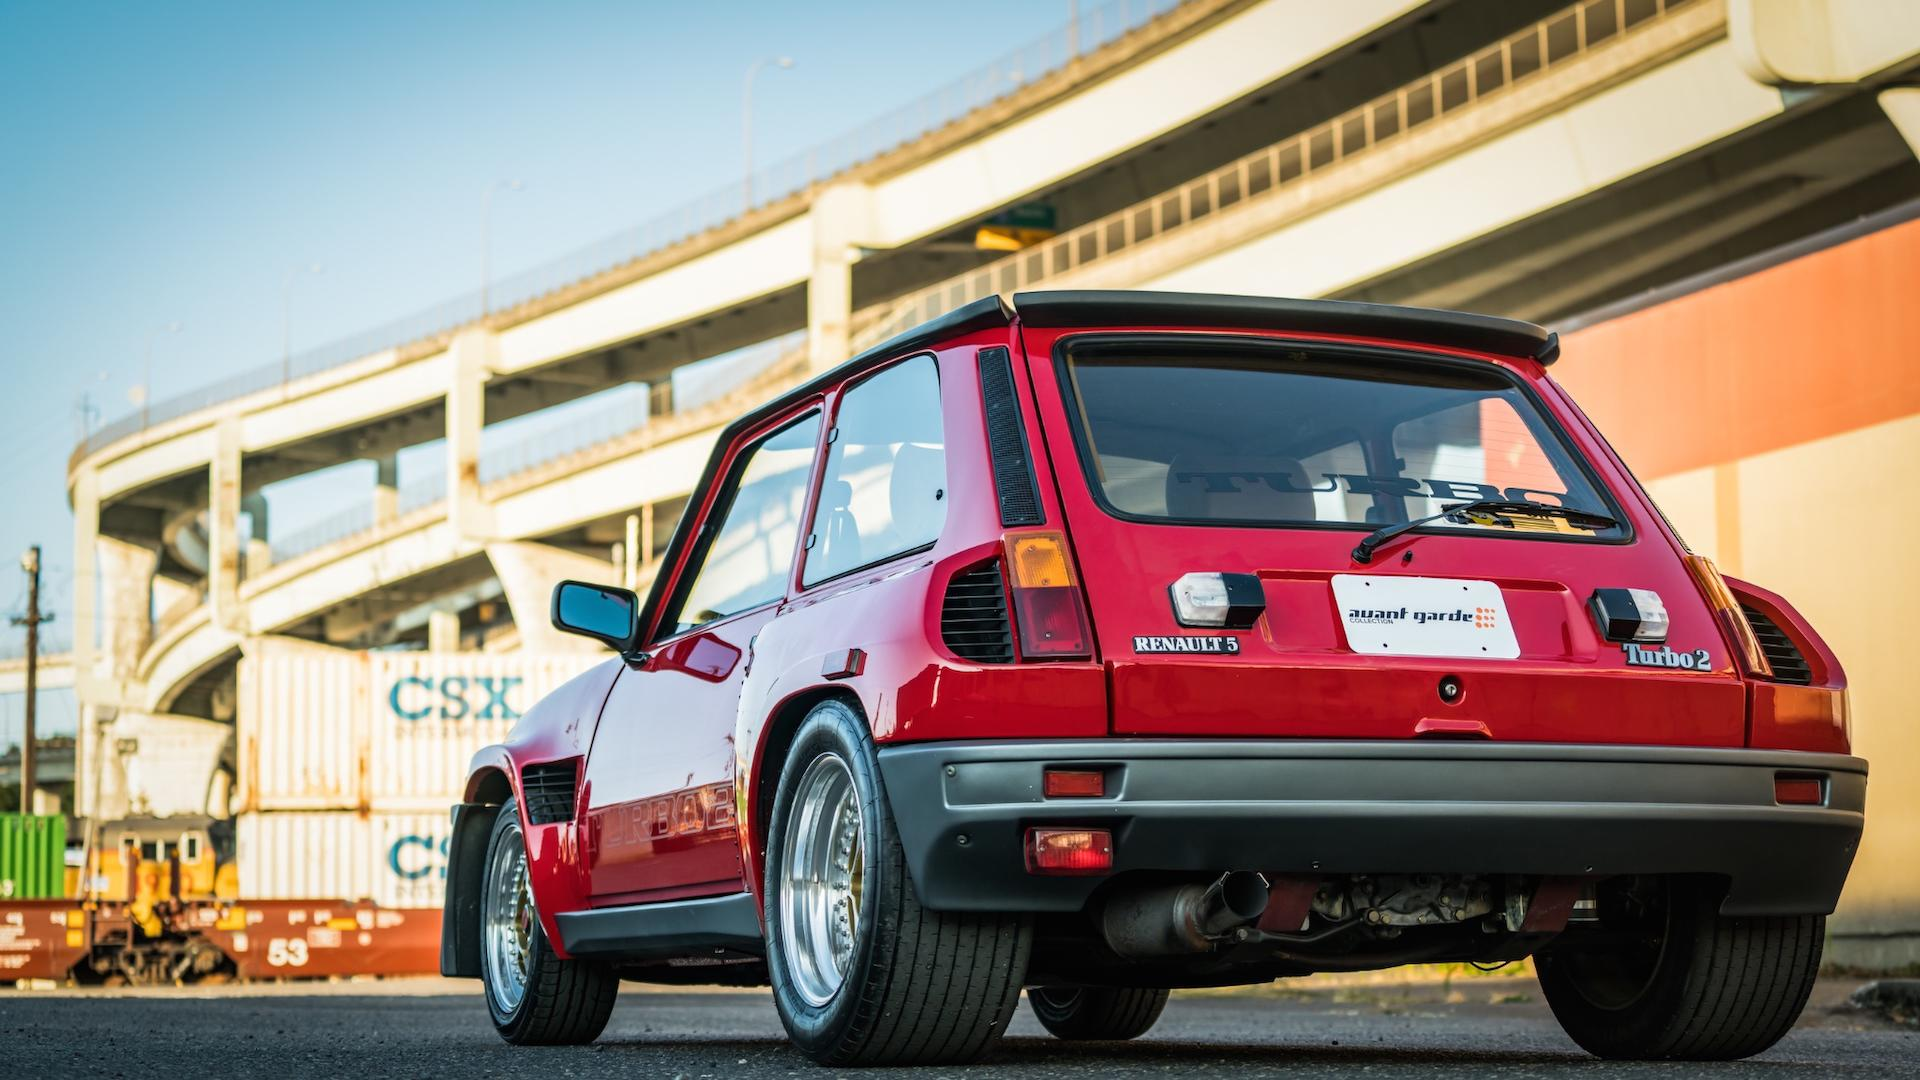 Renault_5_Turbo_2_Evo_15